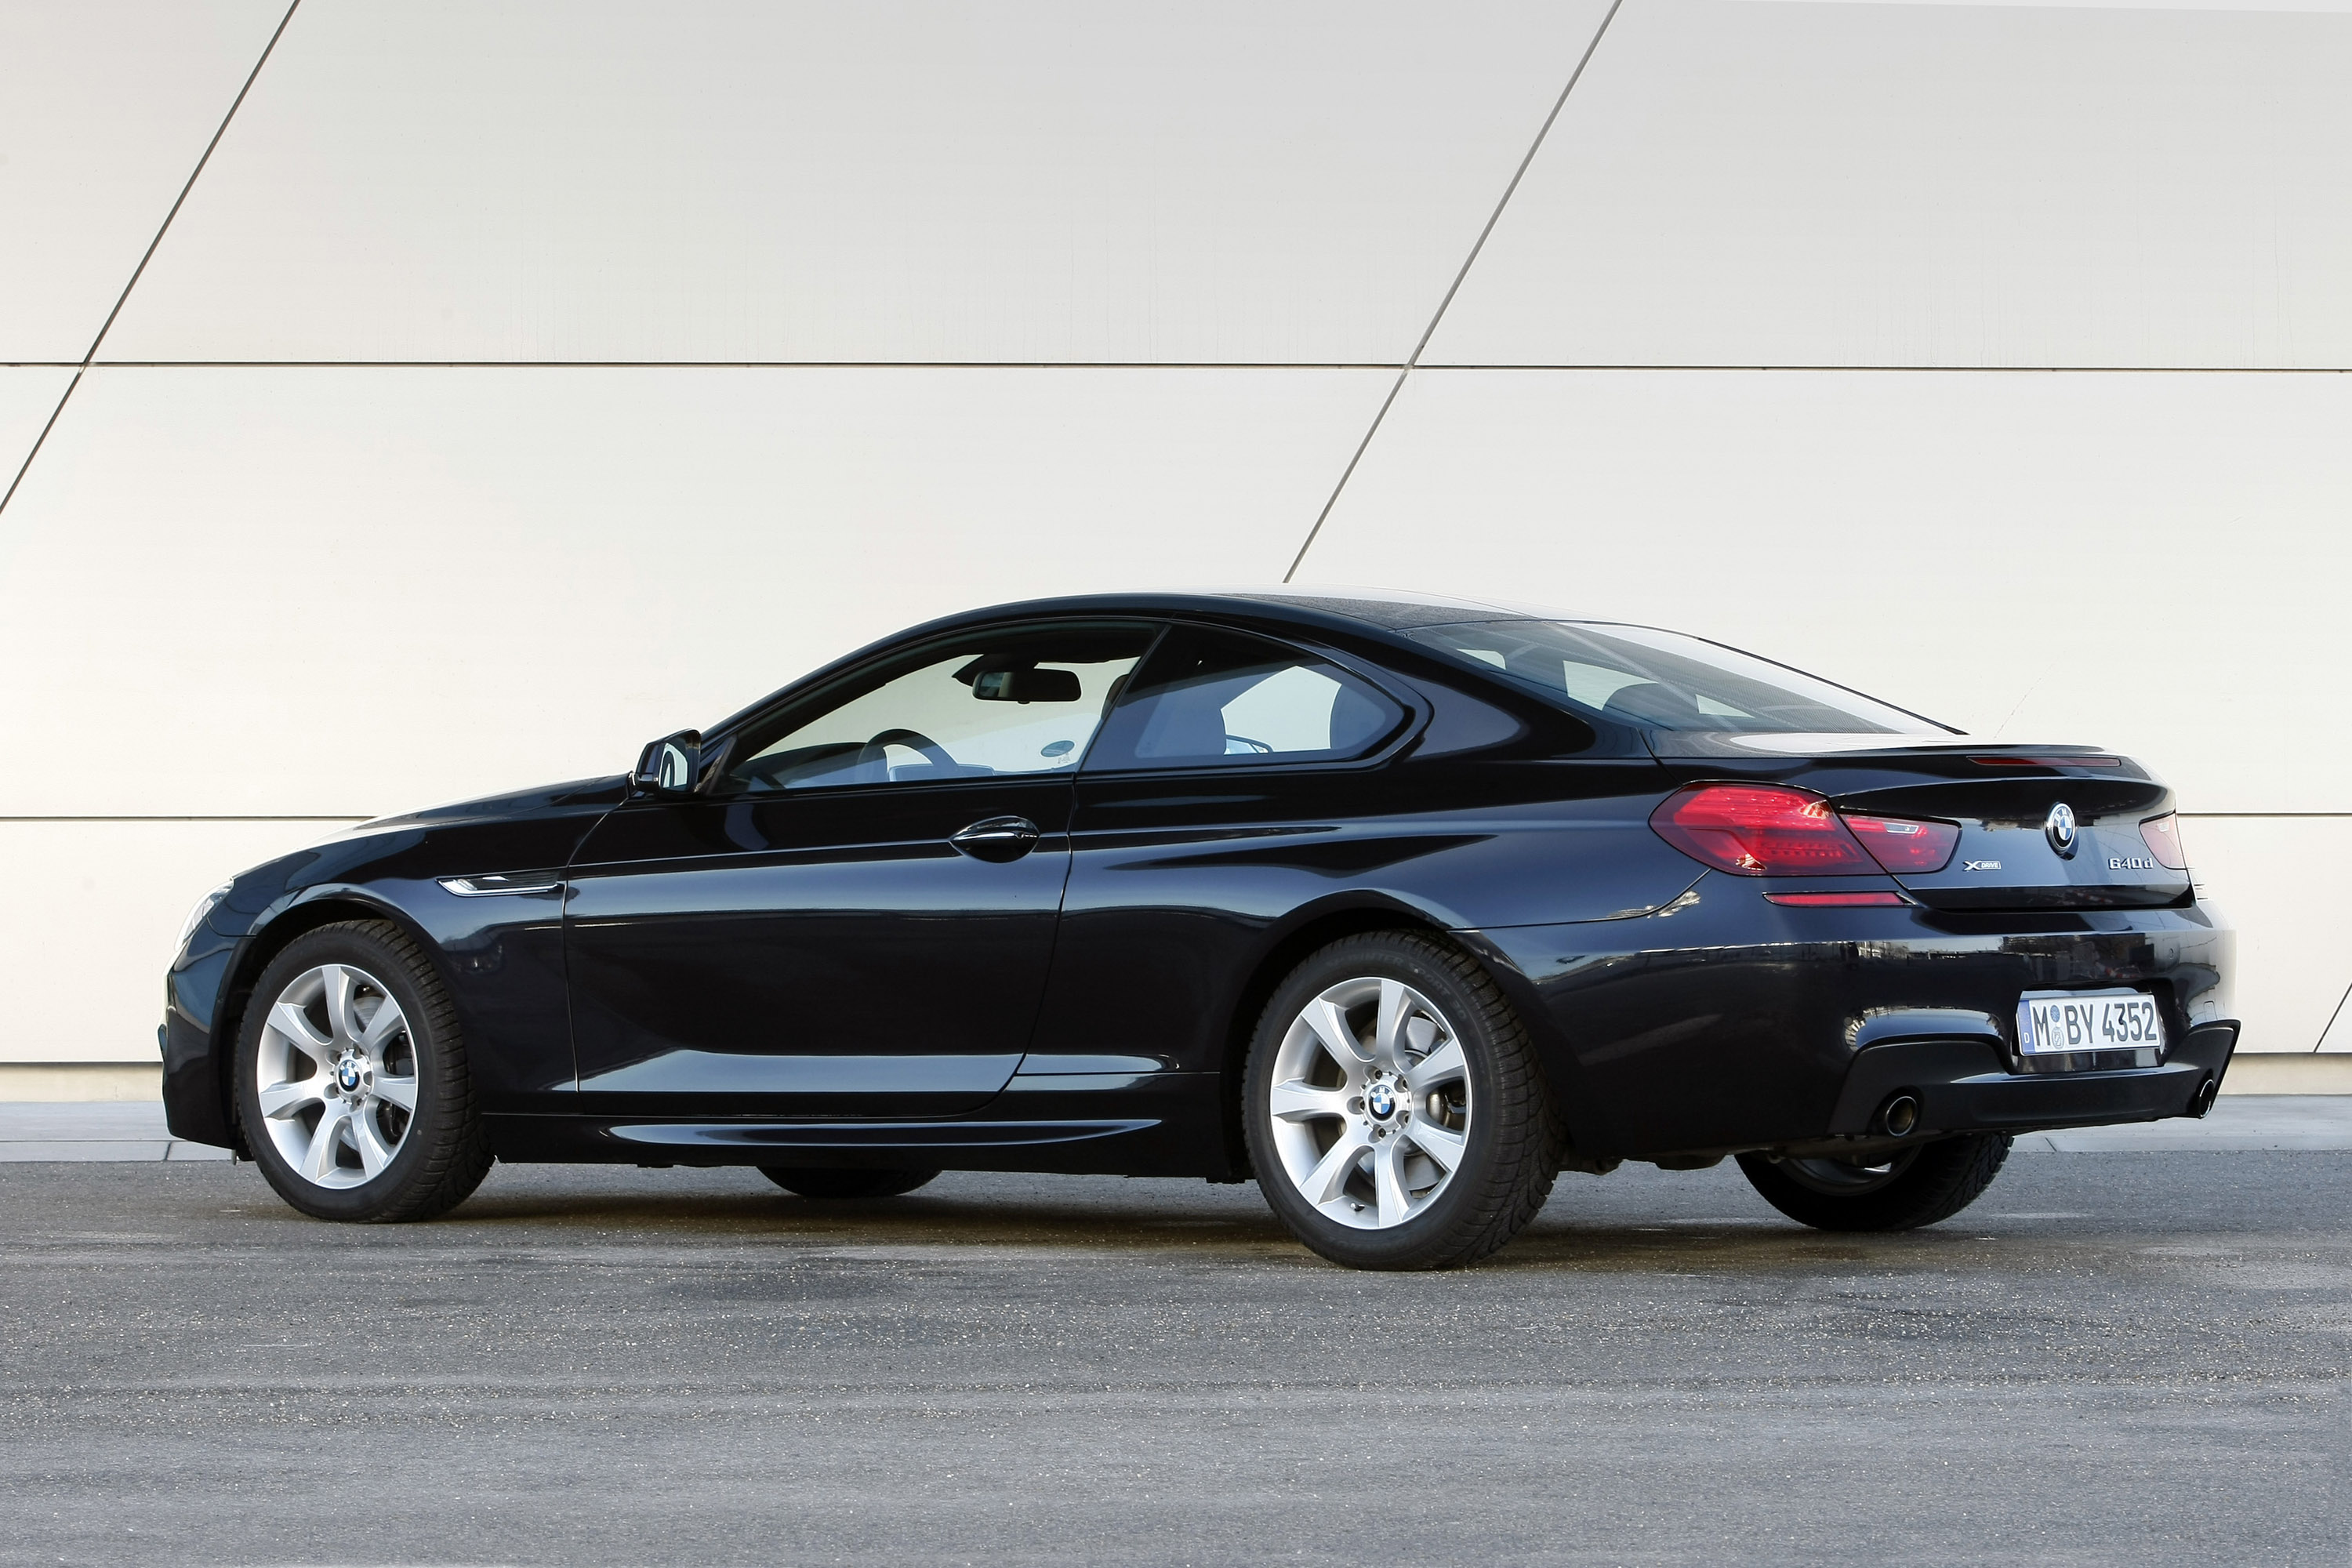 2012 BMW 640d xDrive Coupe - Picture 64878